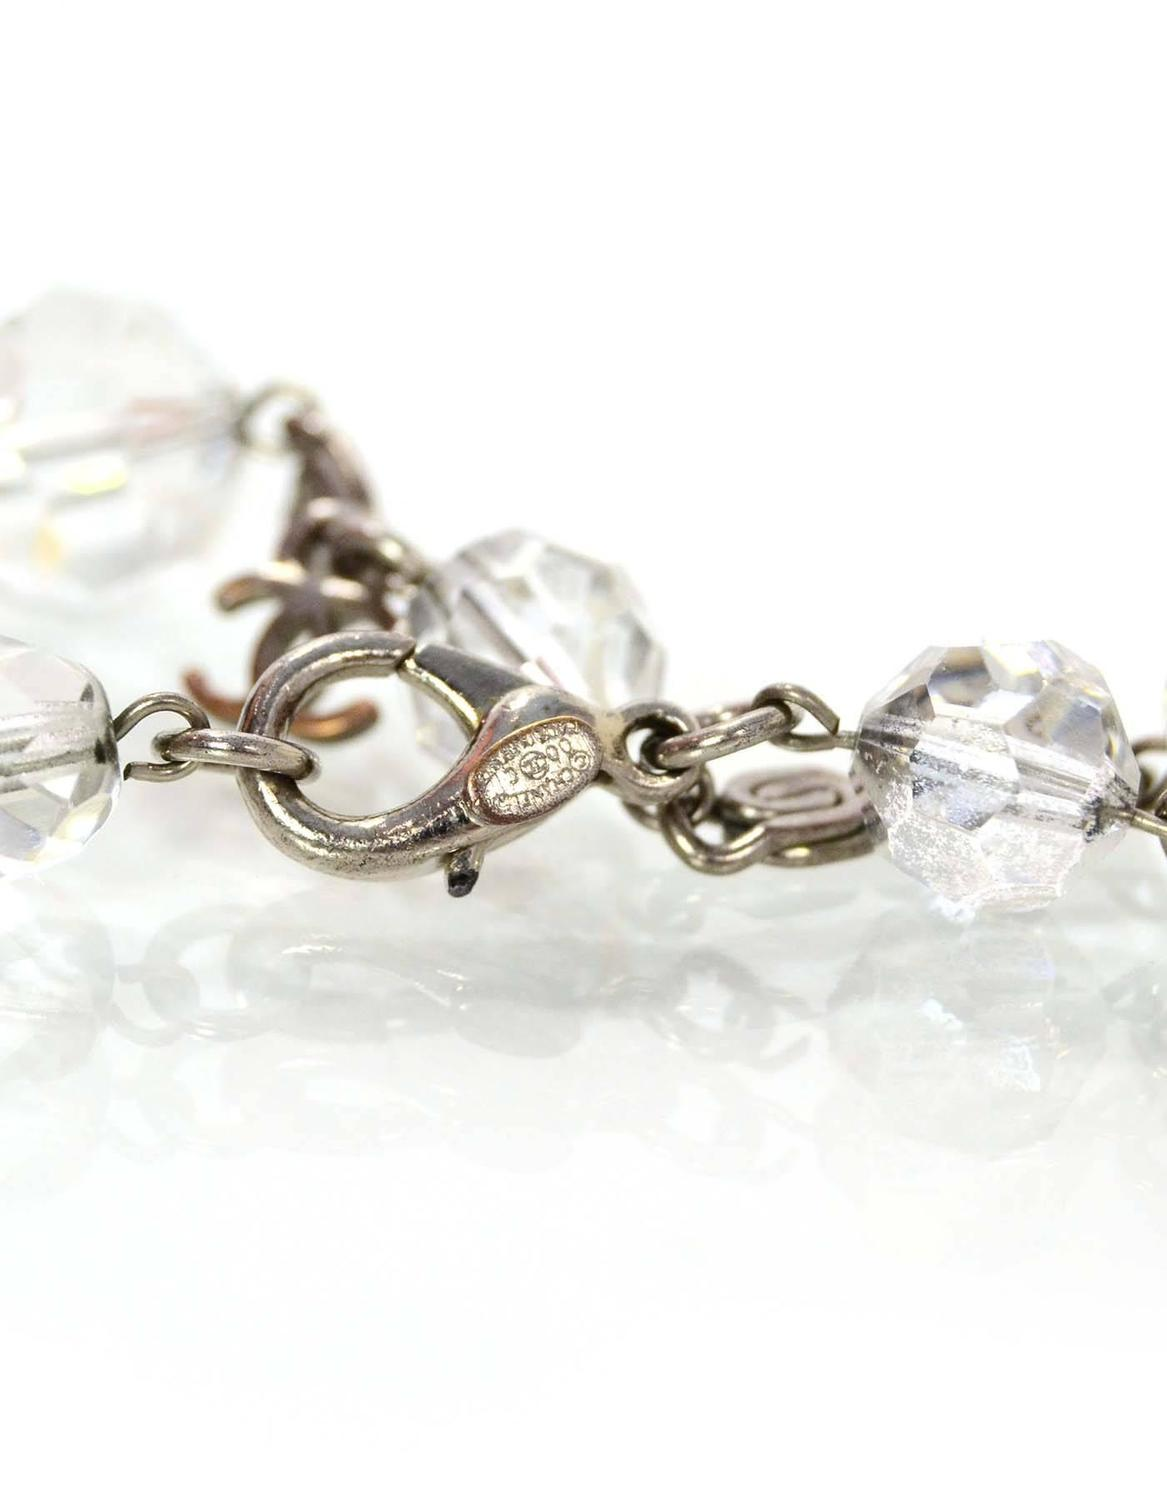 chanel clear bead cc charm bracelet for sale at 1stdibs